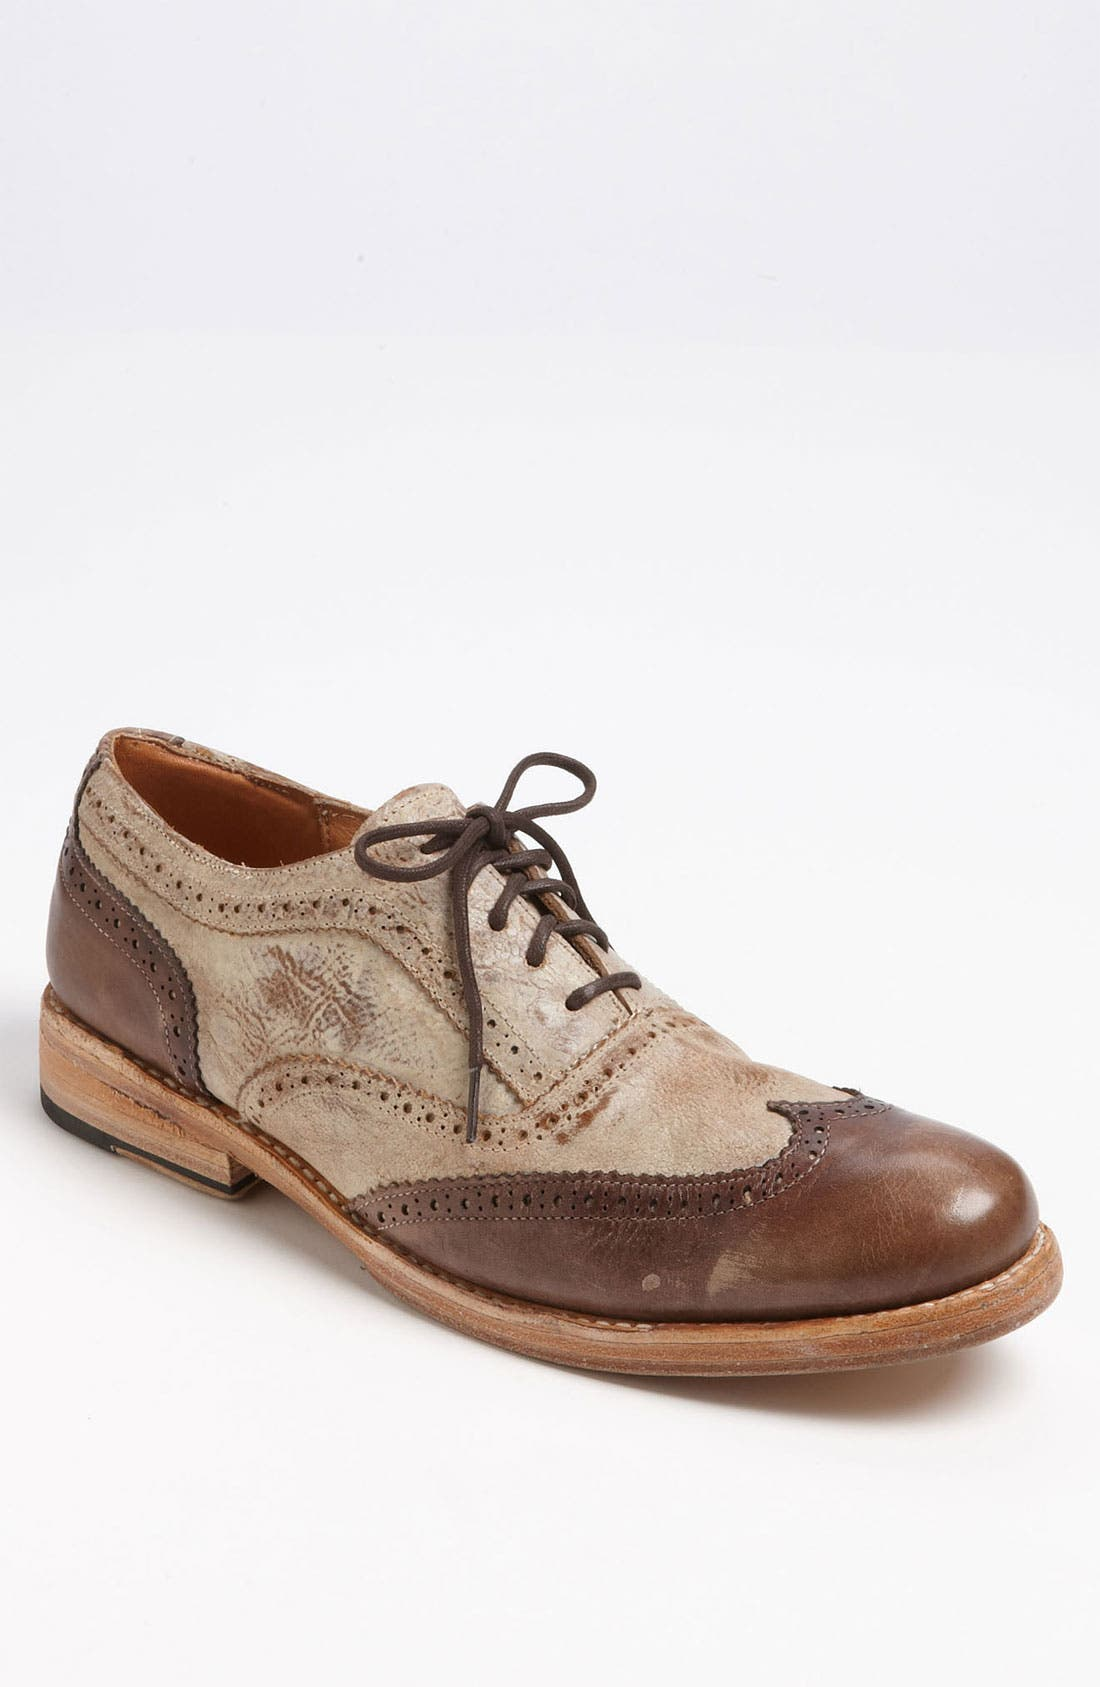 Alternate Image 1 Selected - Bed Stu 'Corsico' Wingtip Spectator Shoe